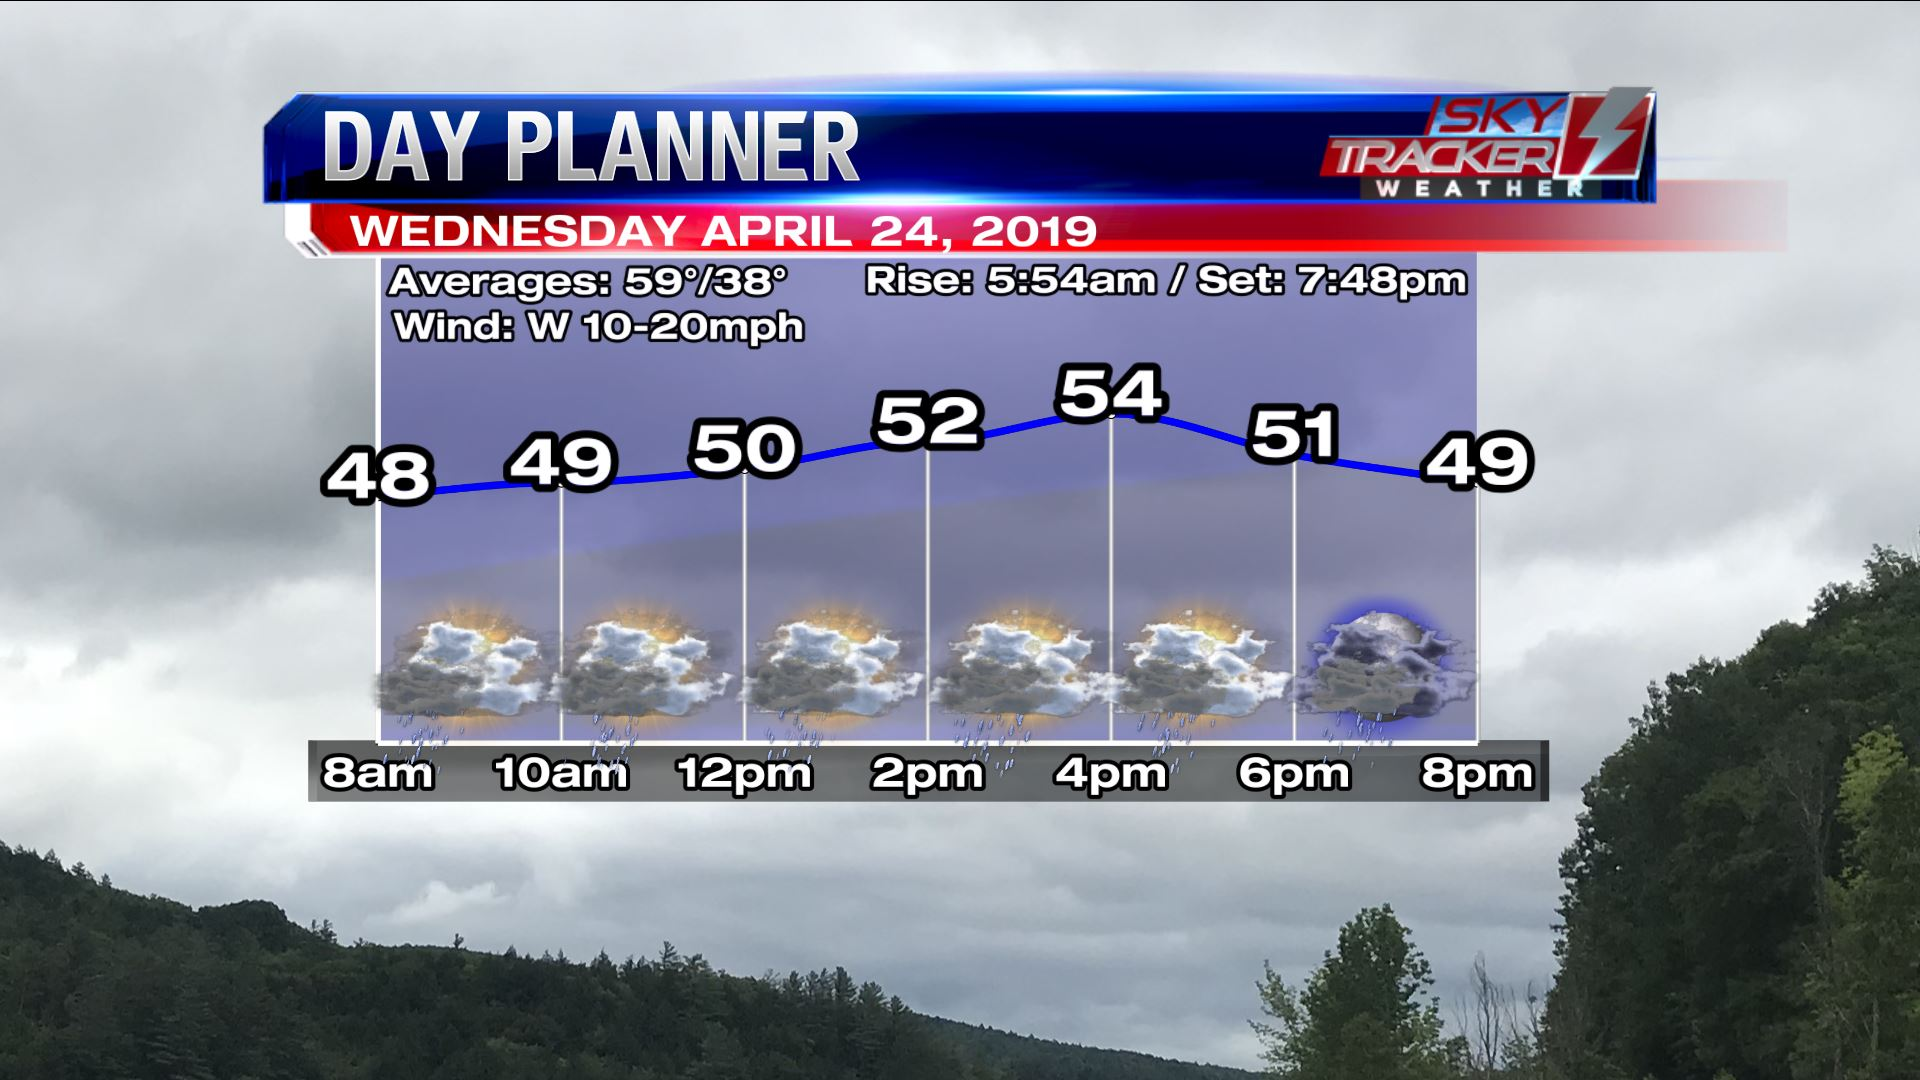 Planner for Wednesday April 24 2019